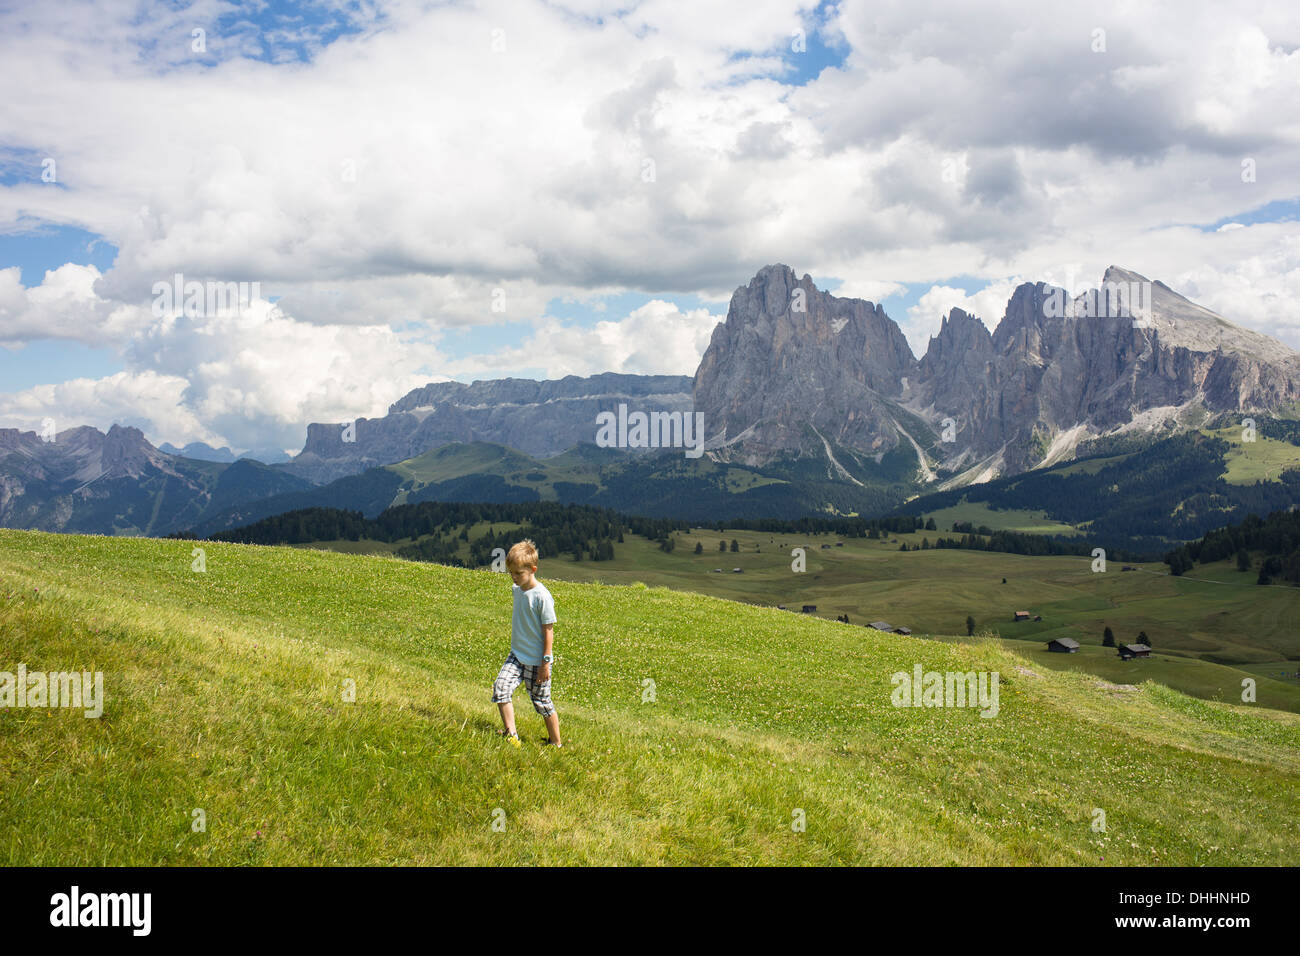 Boy walking up hill, Alto Alige, South Tyrol, Italy - Stock Image